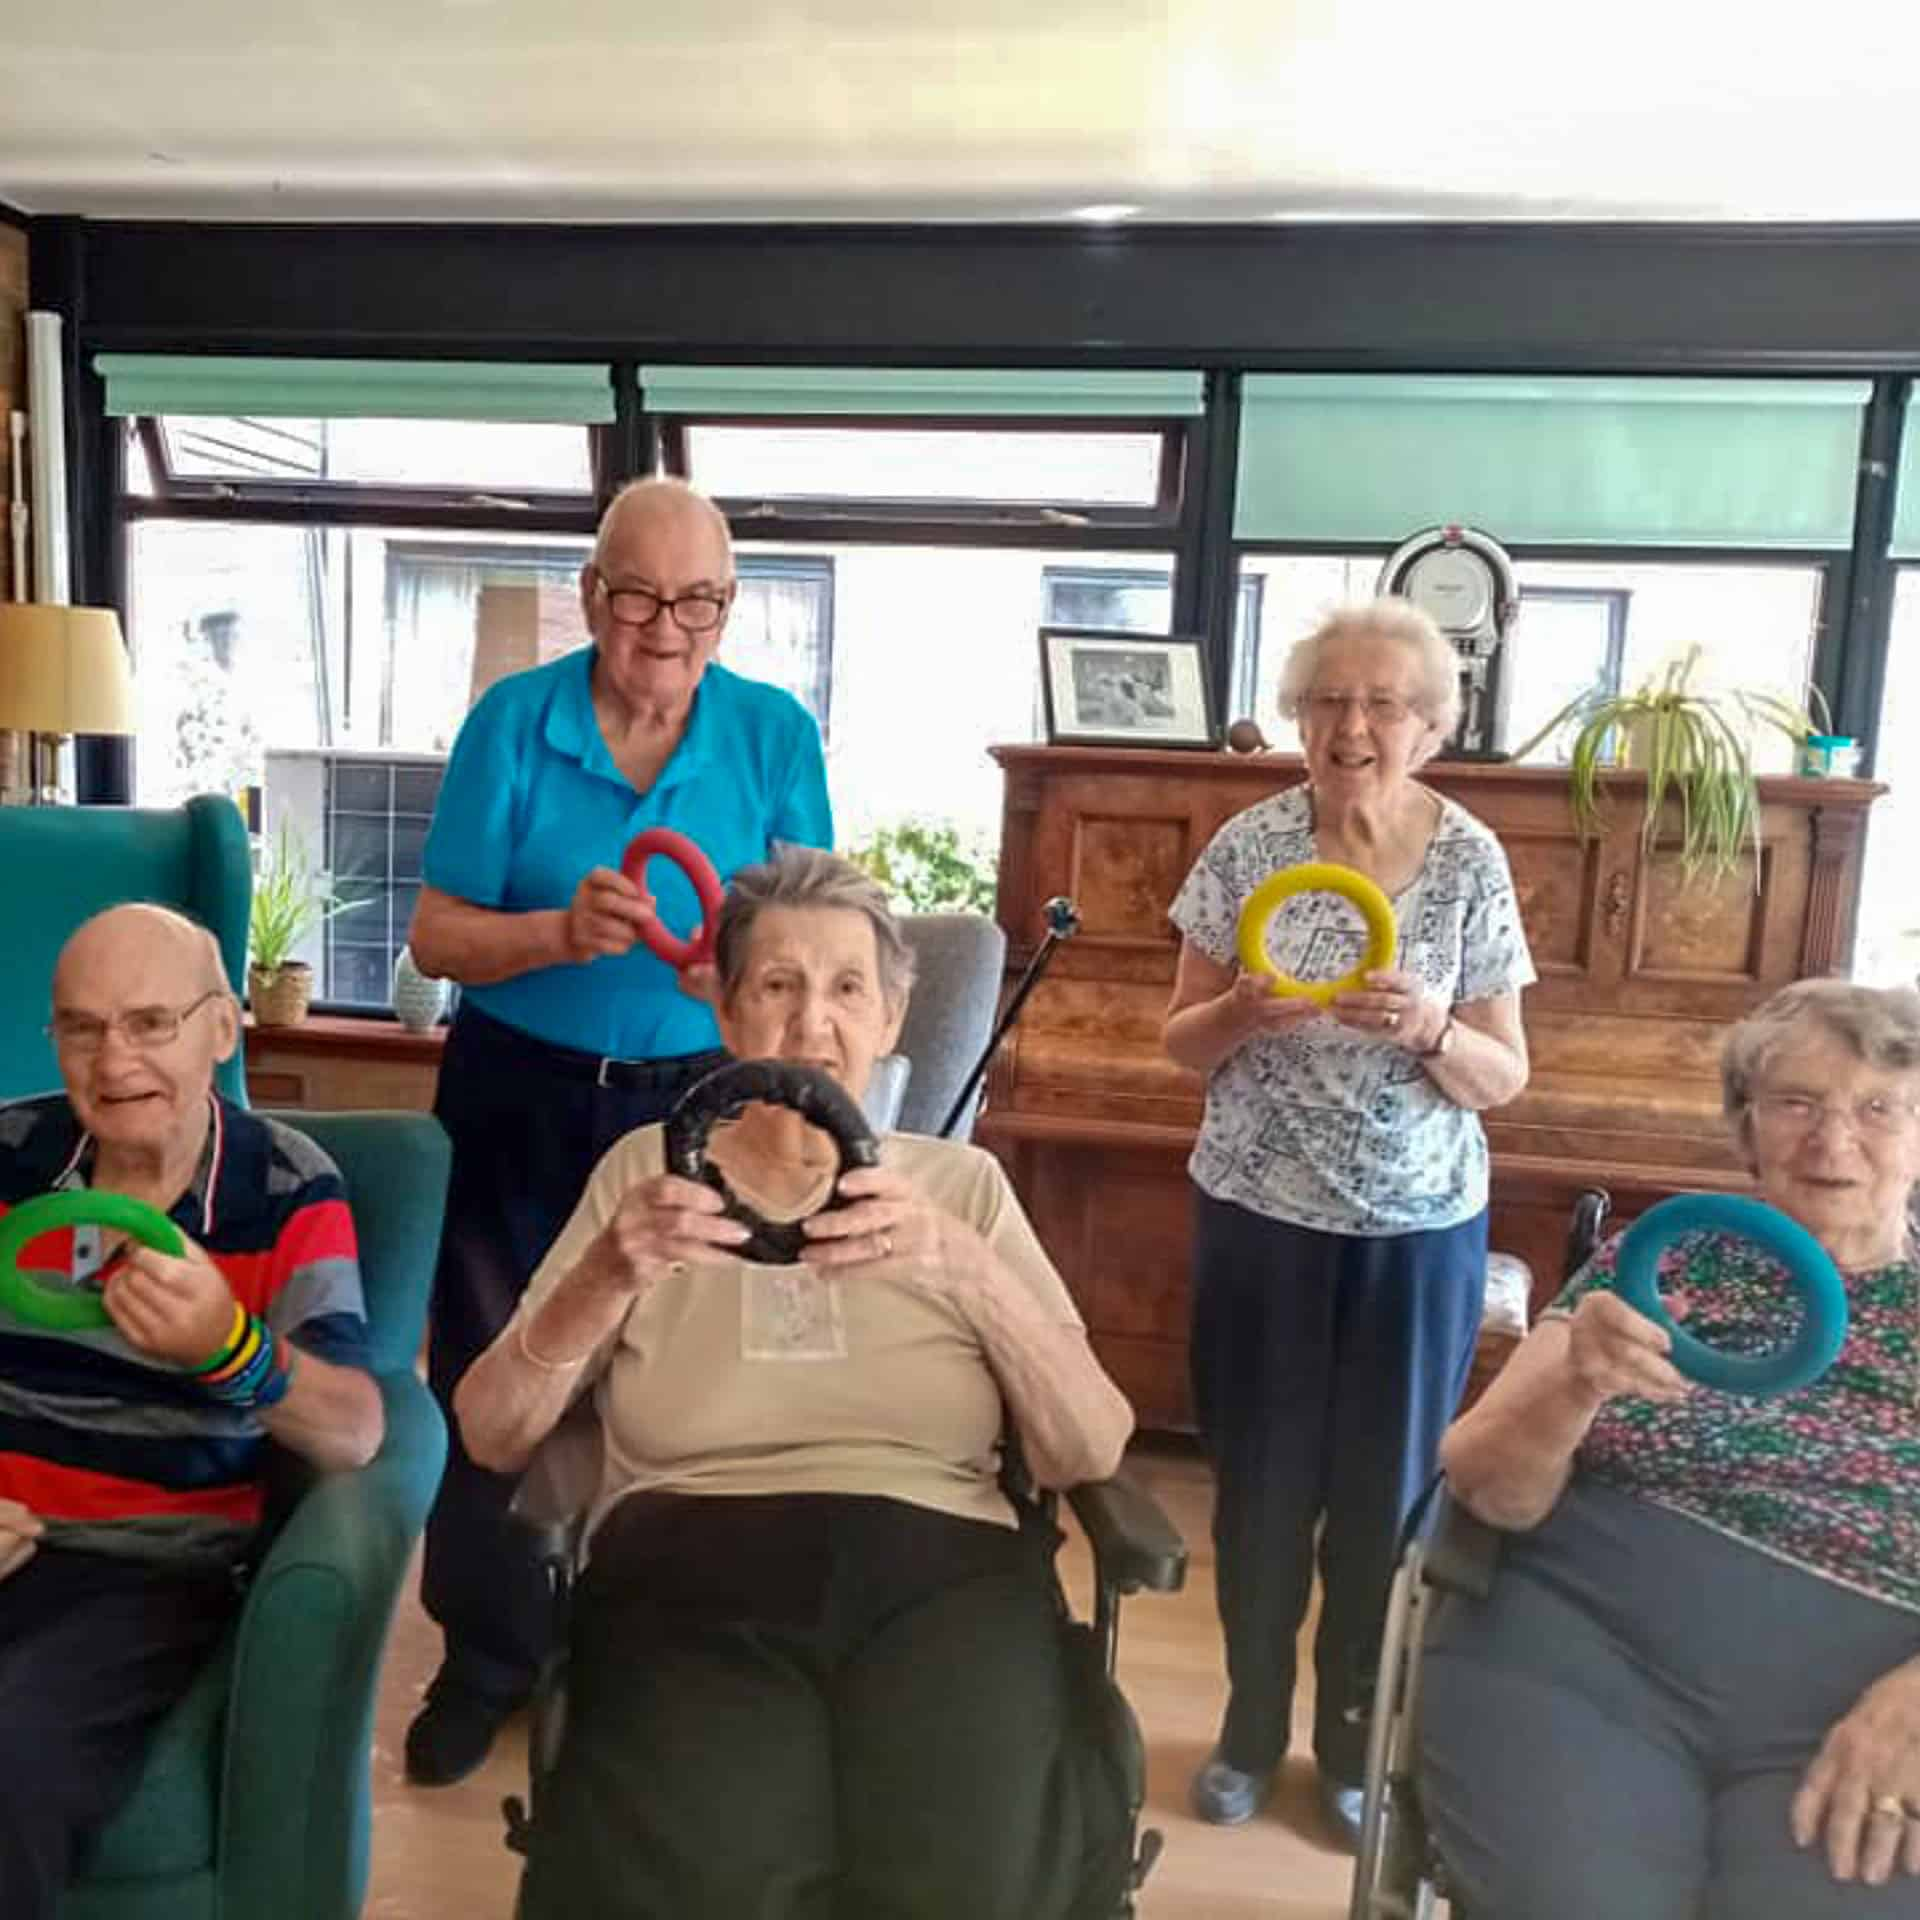 Residents of East Renfrewshire care home Eastwood Court ready for their 'Eastwood Games'.